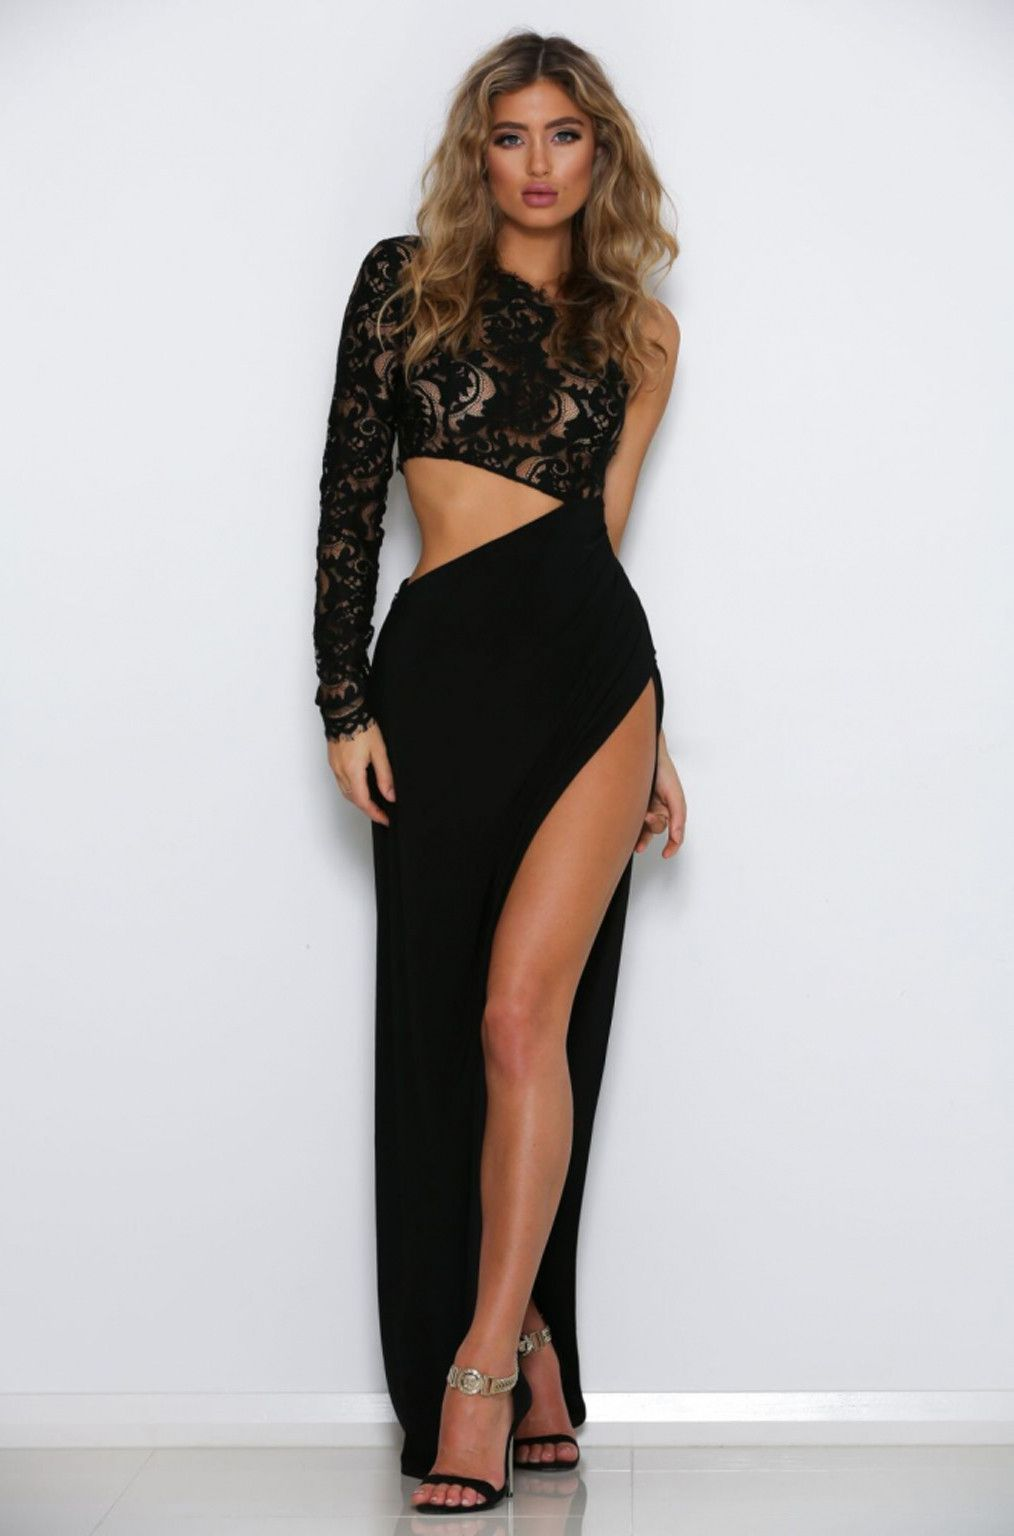 Abyss By Abby - Josette Gown (Black) | NakedDresses.com – Naked ...